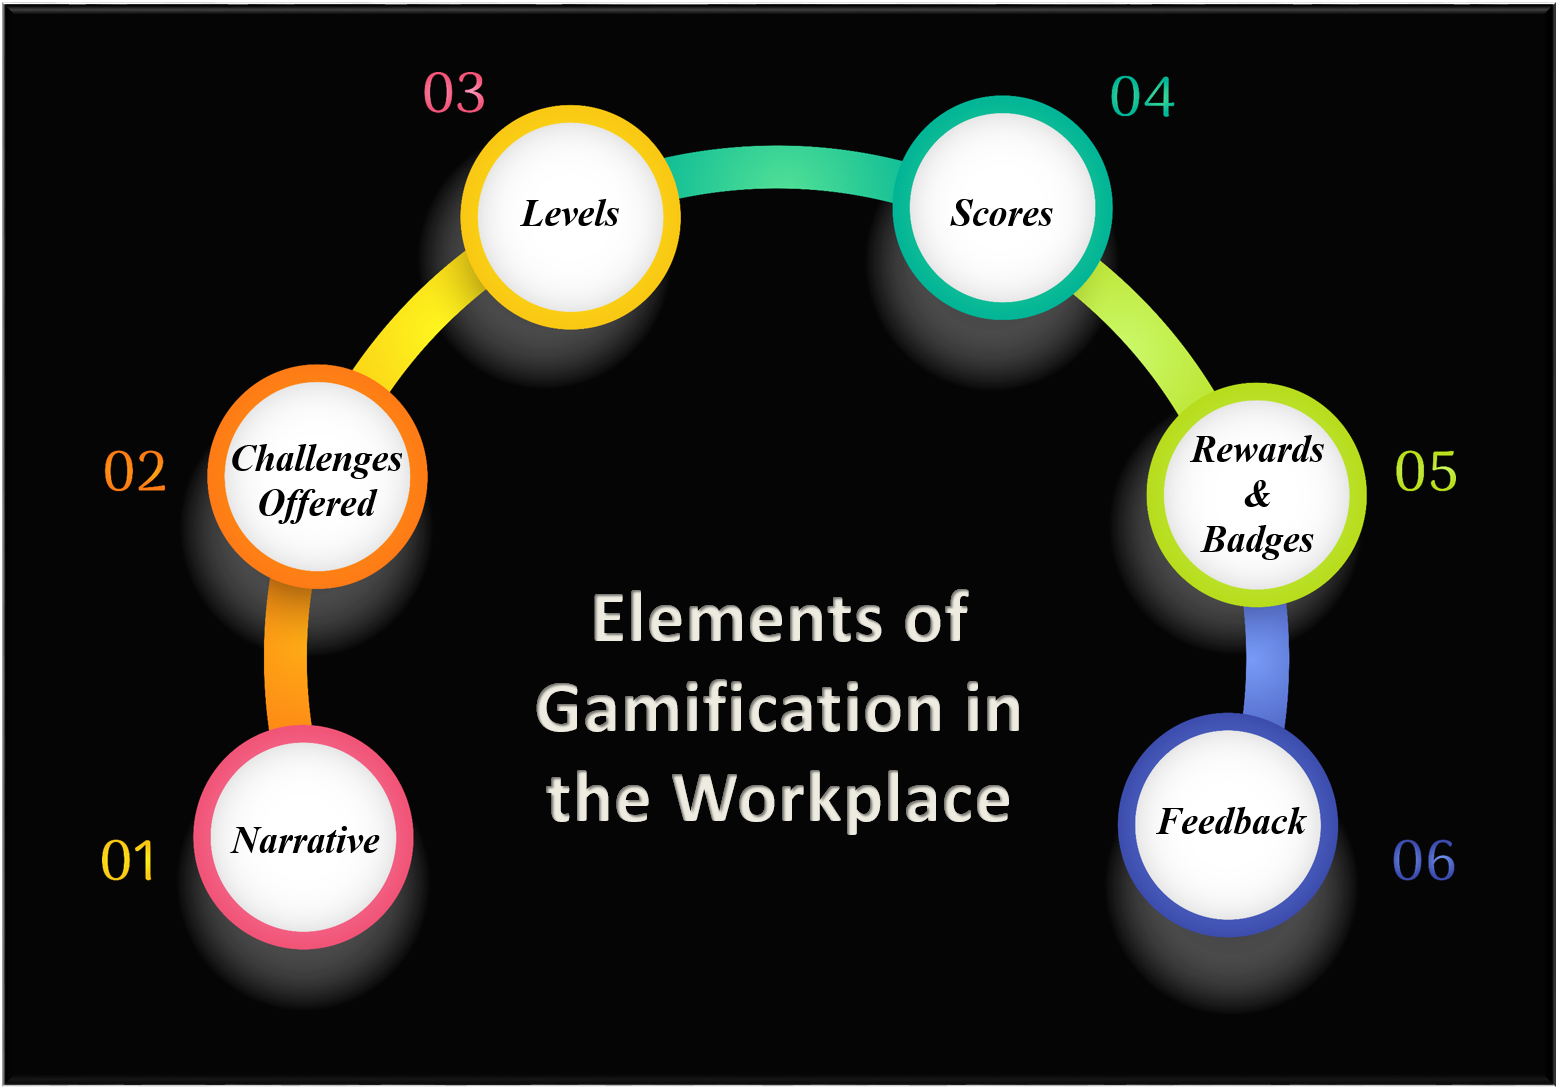 Elements of Gamification in the Workplace